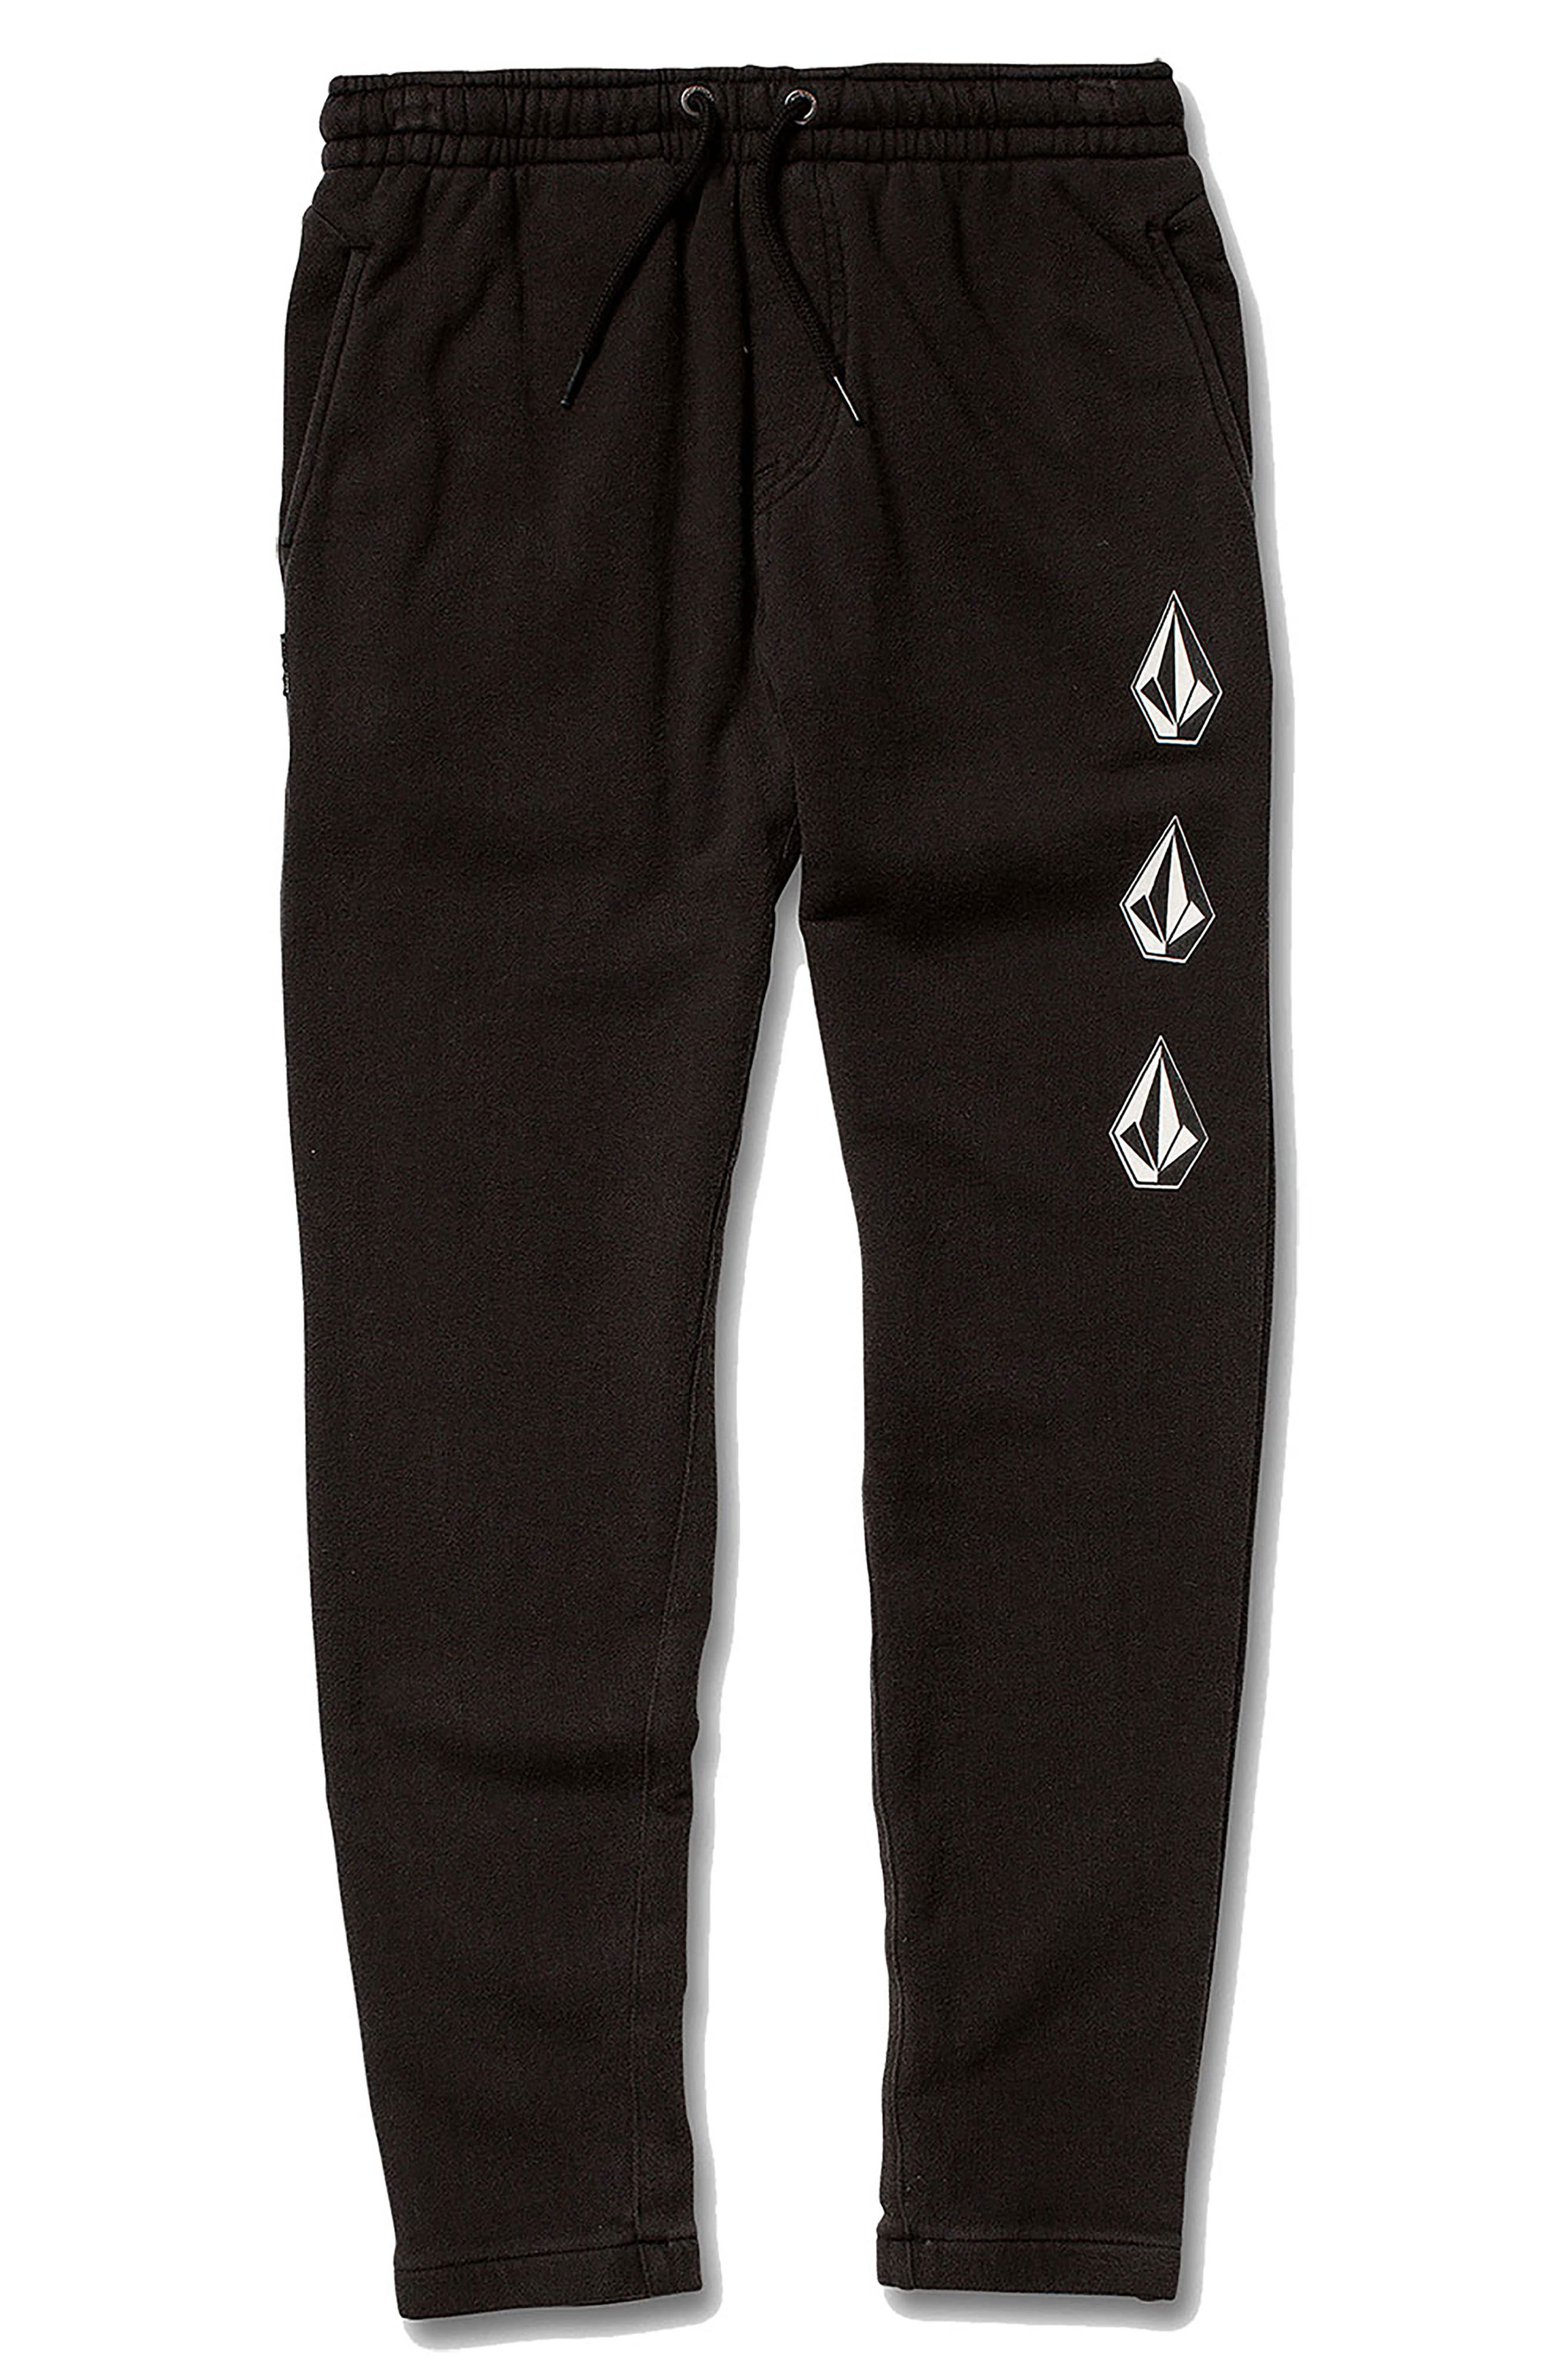 Deadly Stones Sweatpants,                             Main thumbnail 1, color,                             BLACK